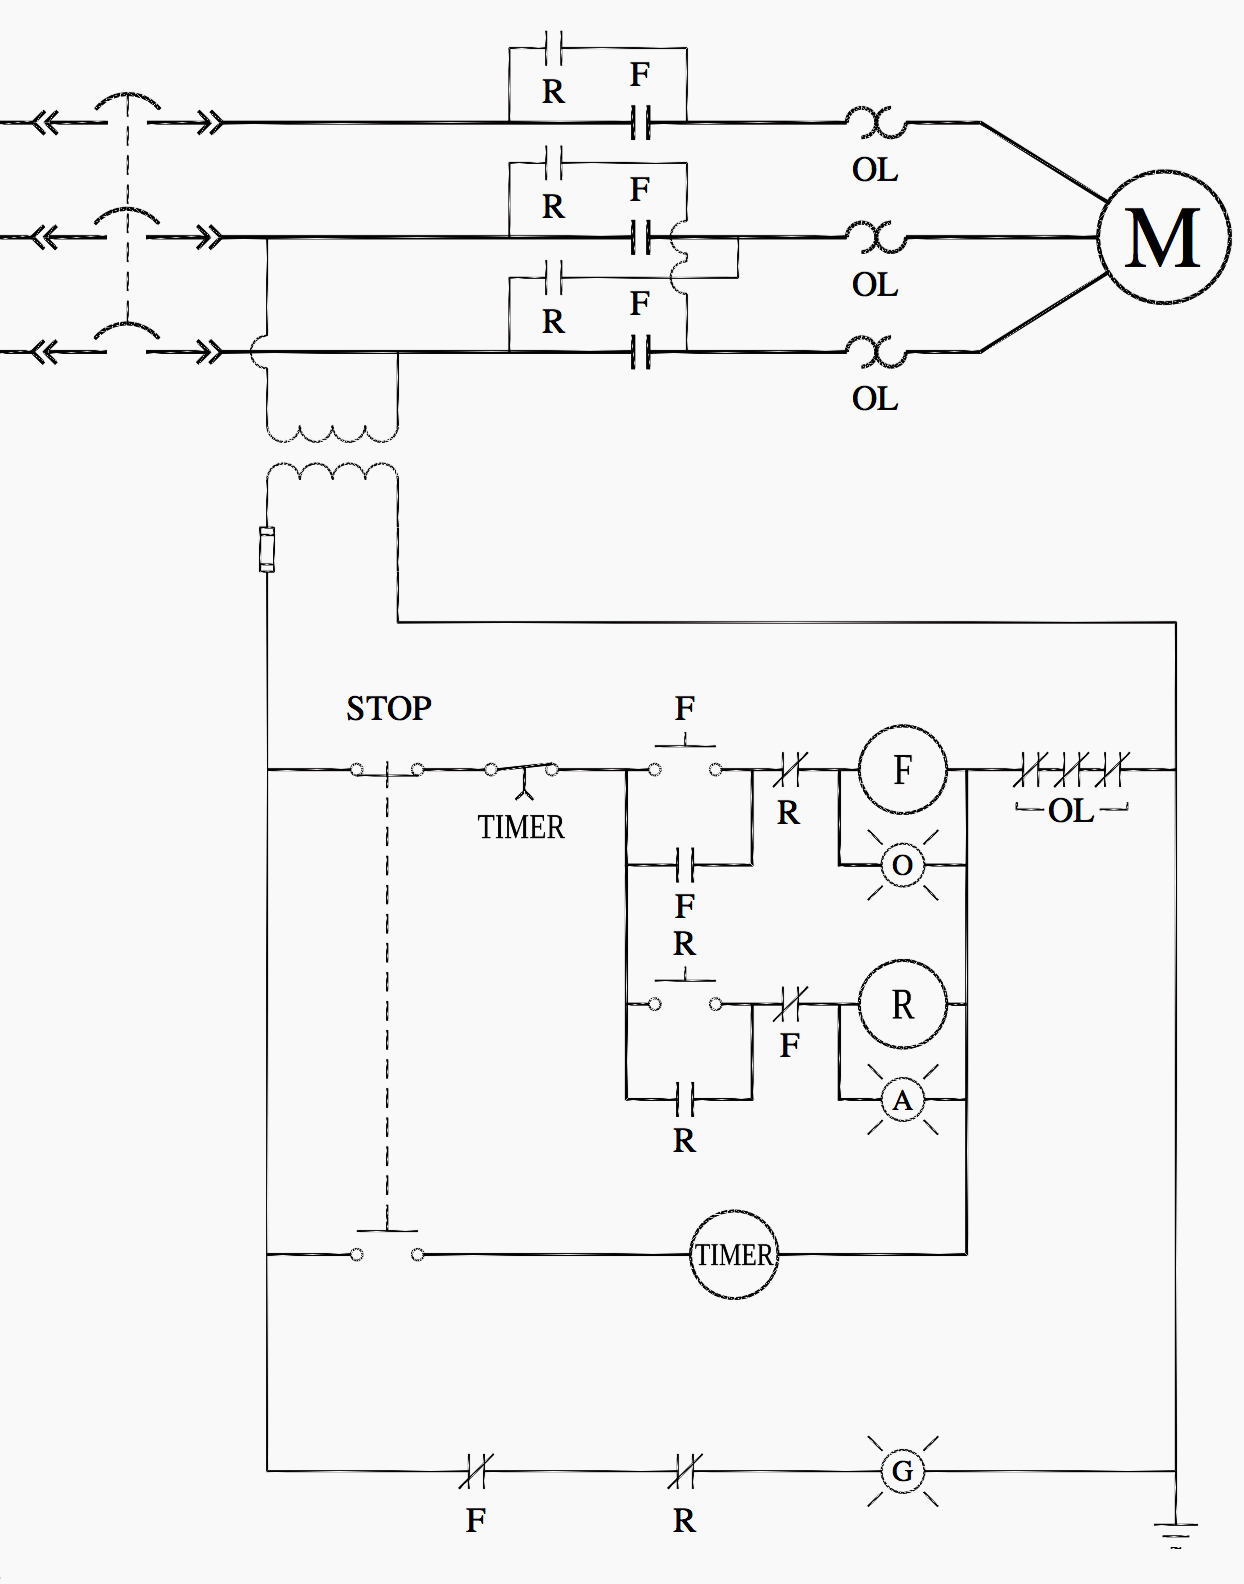 hight resolution of anti plugging circuit automation in 2019 ladder logic on hand drill circuit diagram on simple motor control ladder diagram